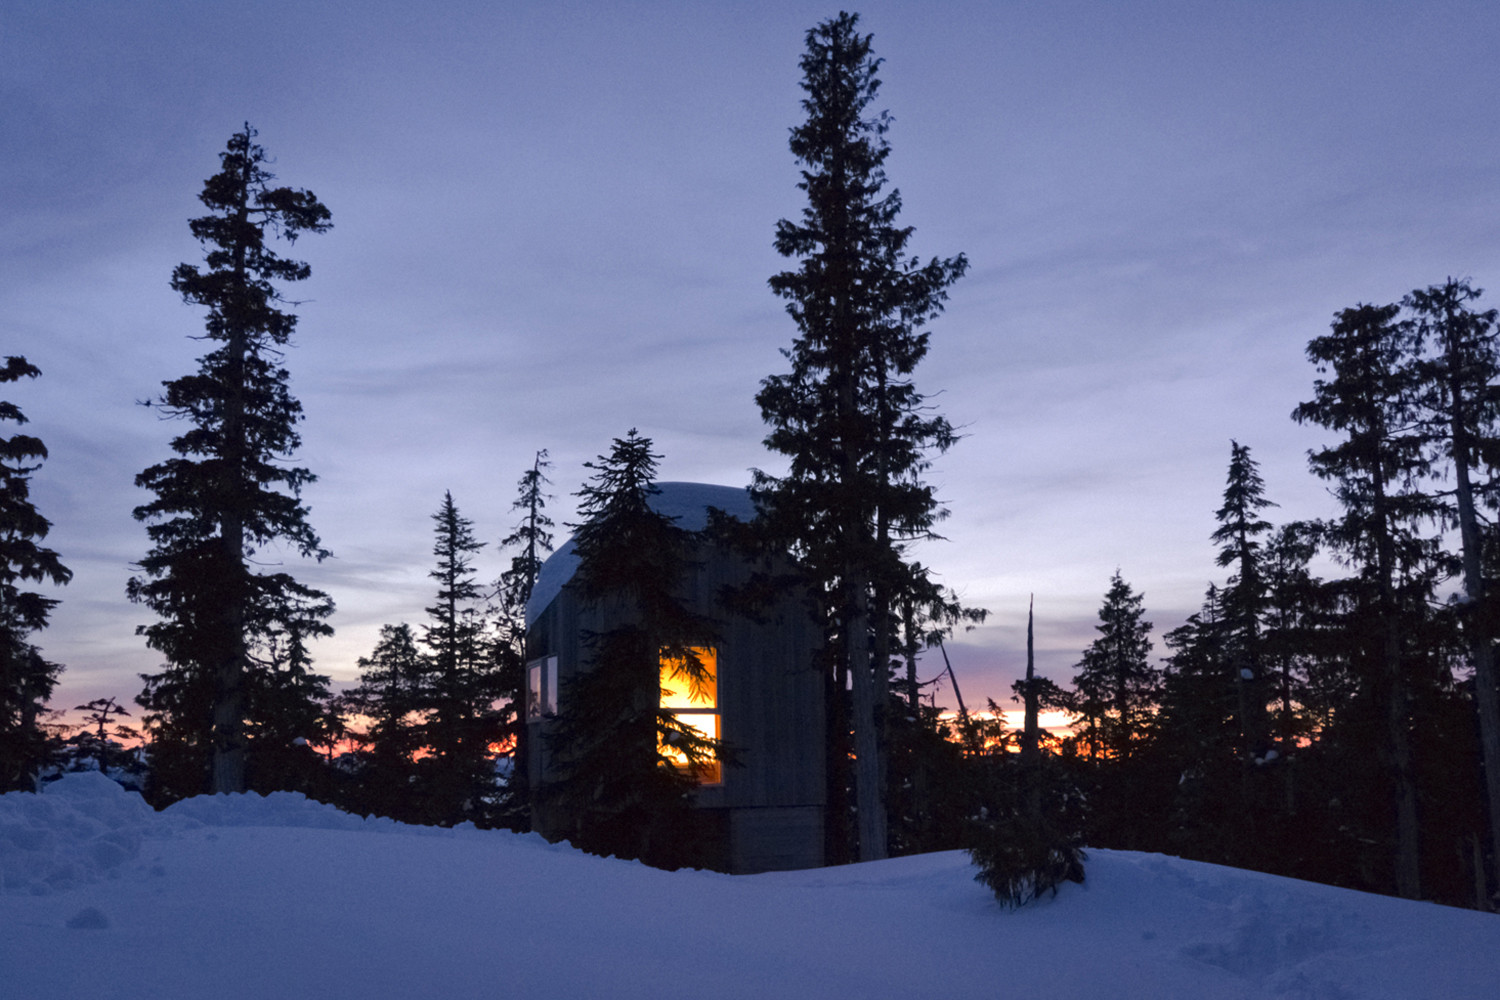 View of the Alpine Cabin after sunset